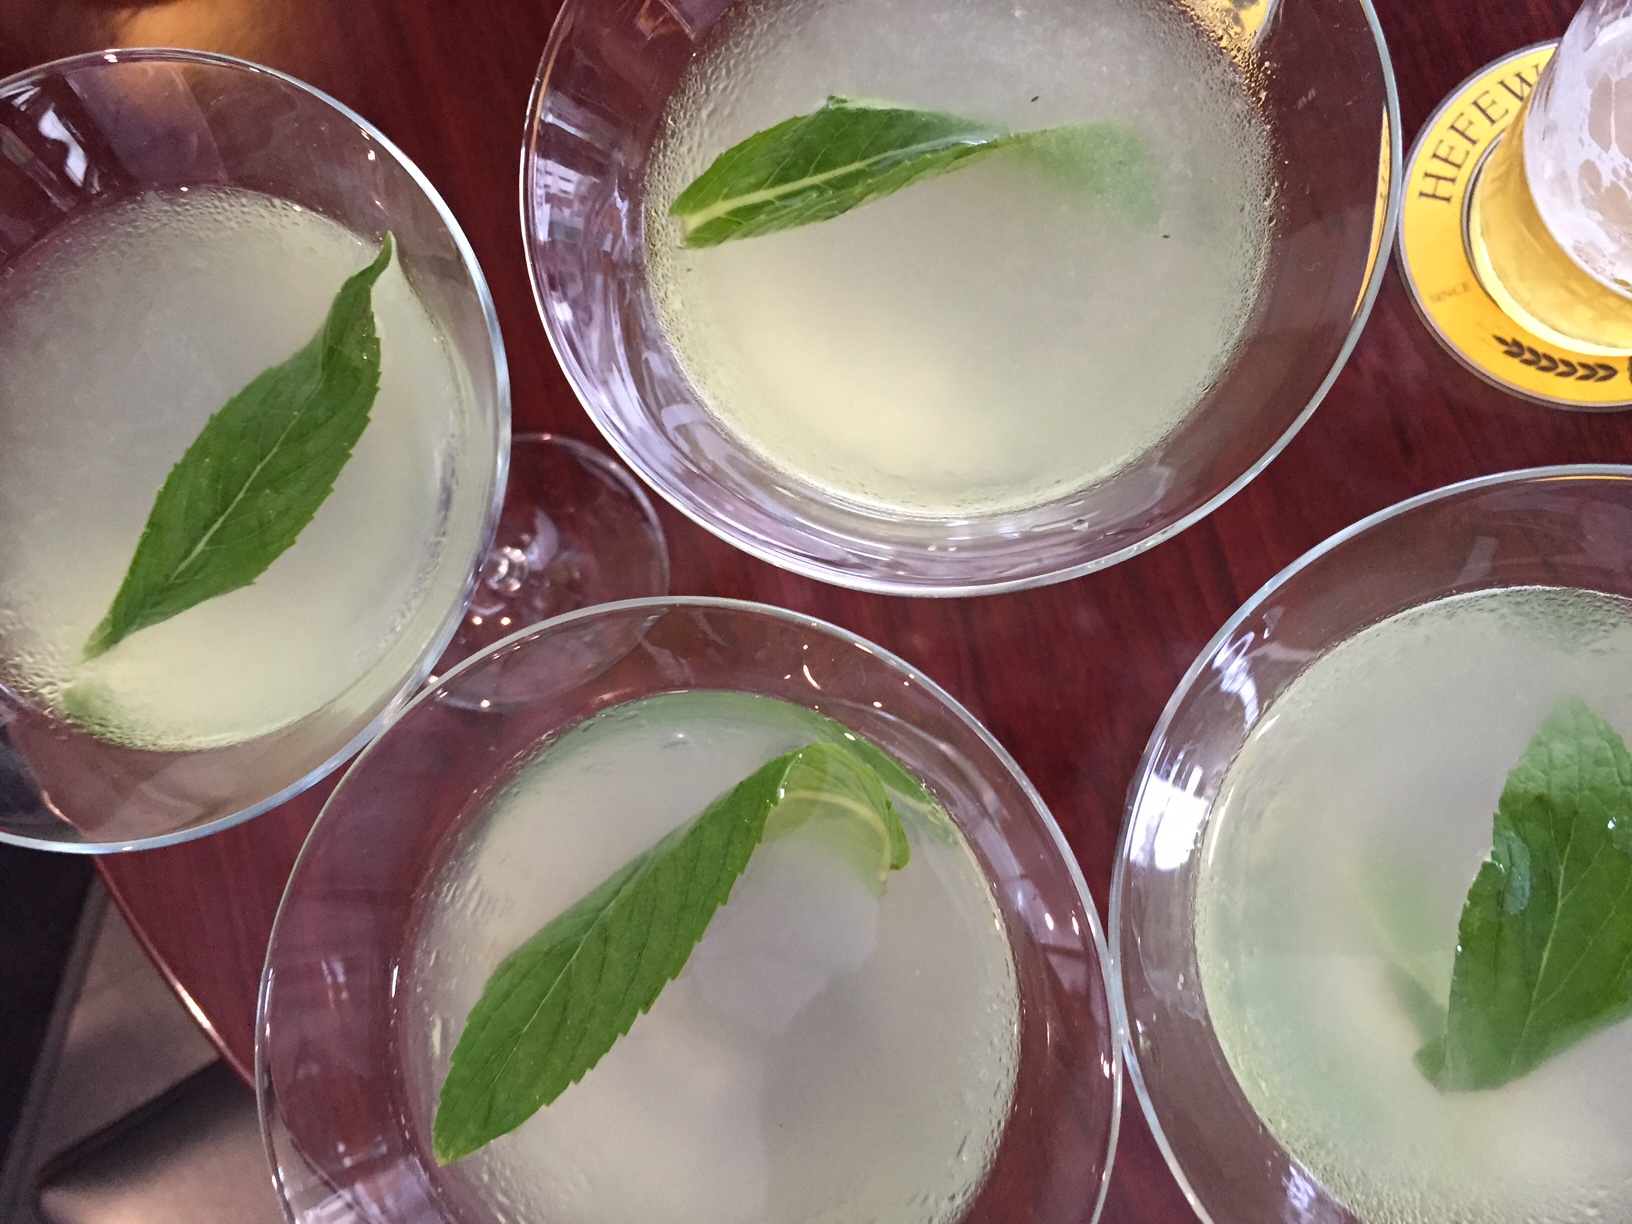 Four garnished cocktails poured in martini glasses